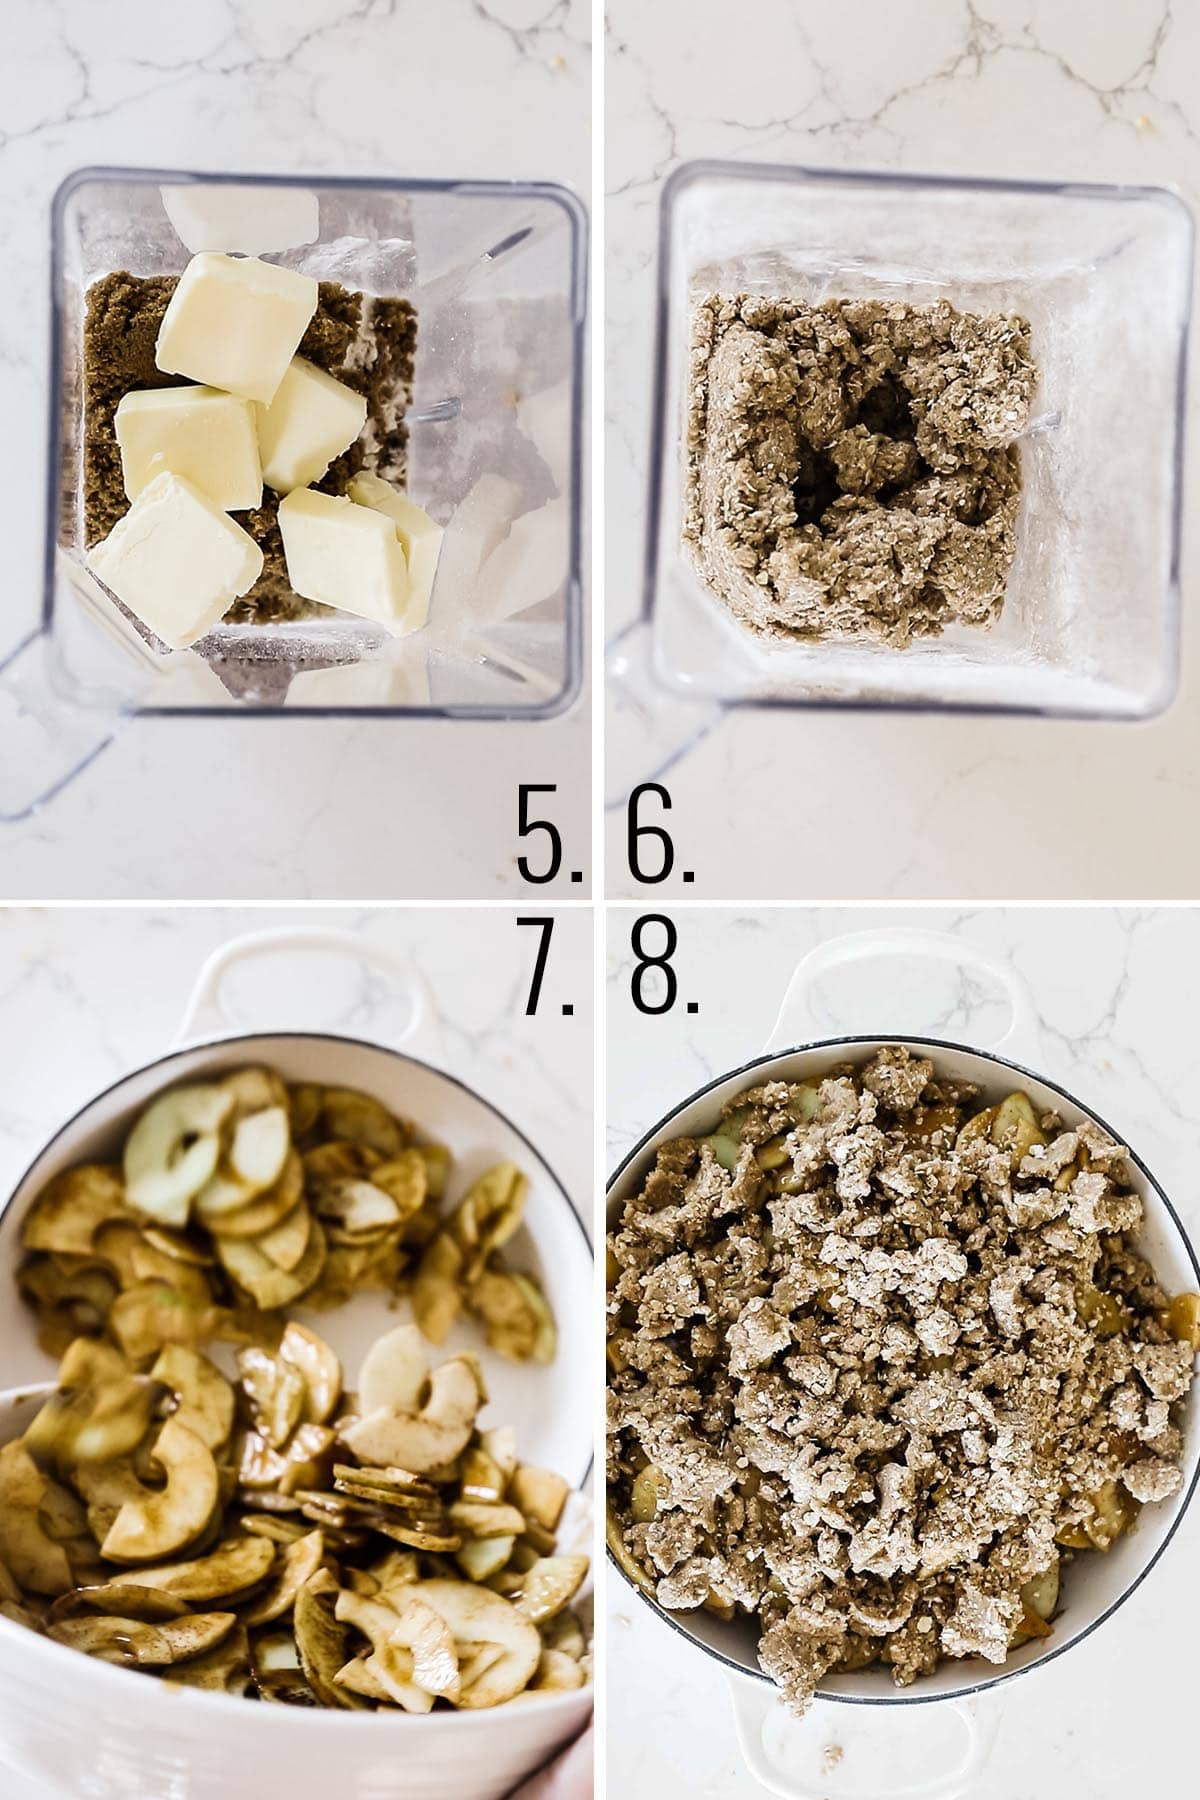 How to make crumb topping - pulse butter and oats.